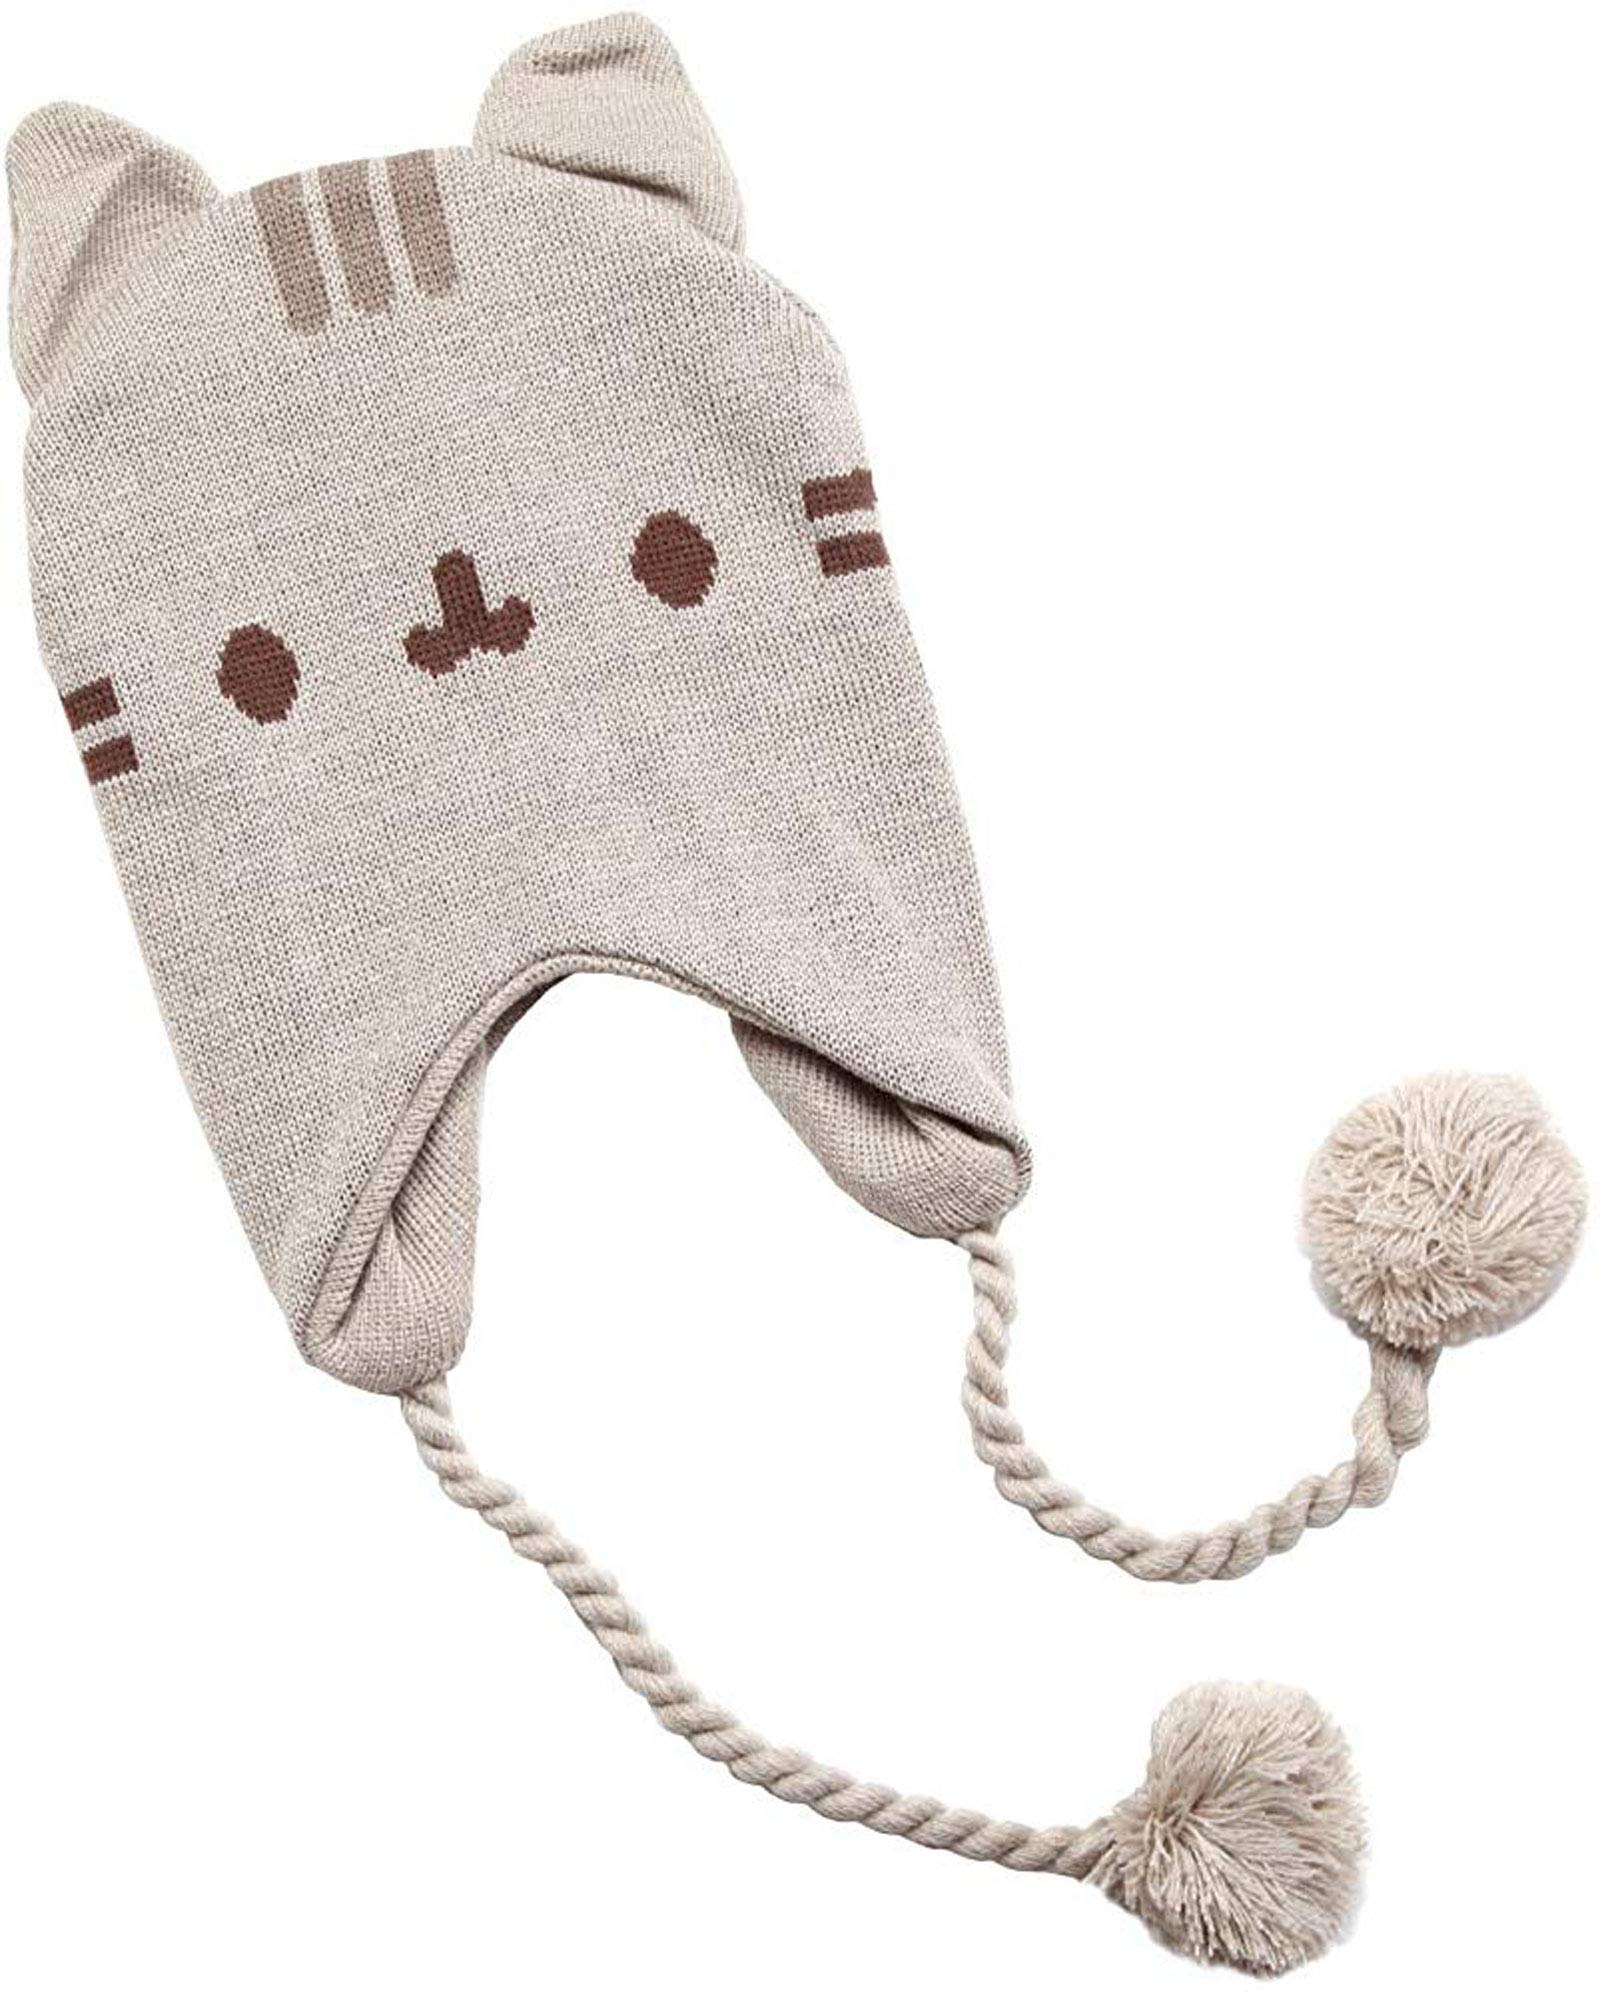 Pusheen Face Peruvian Chullo Hat with Earflaps Poms and Cat Ears